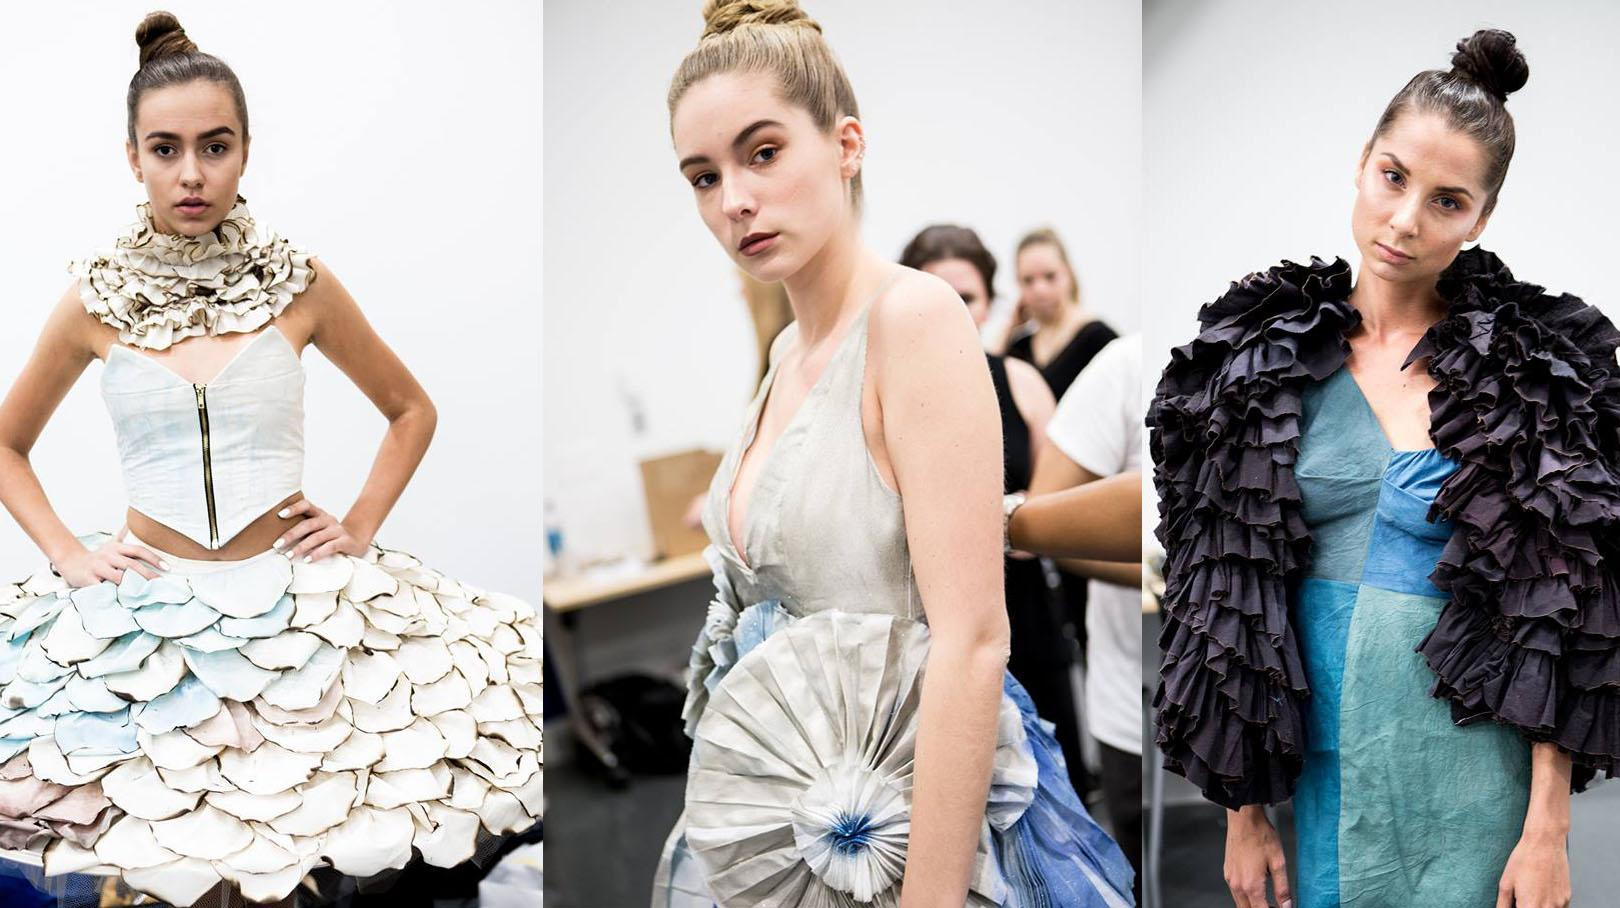 Above is a sneak peek of the garments that are going to be in the TEDx fashion show, all of the pieces are designed by Lindenwood students. From left, designed by Anna Heinold, designed by Linda Nichols and designed by Rachel Jagust. Photos by BiBi Photography.